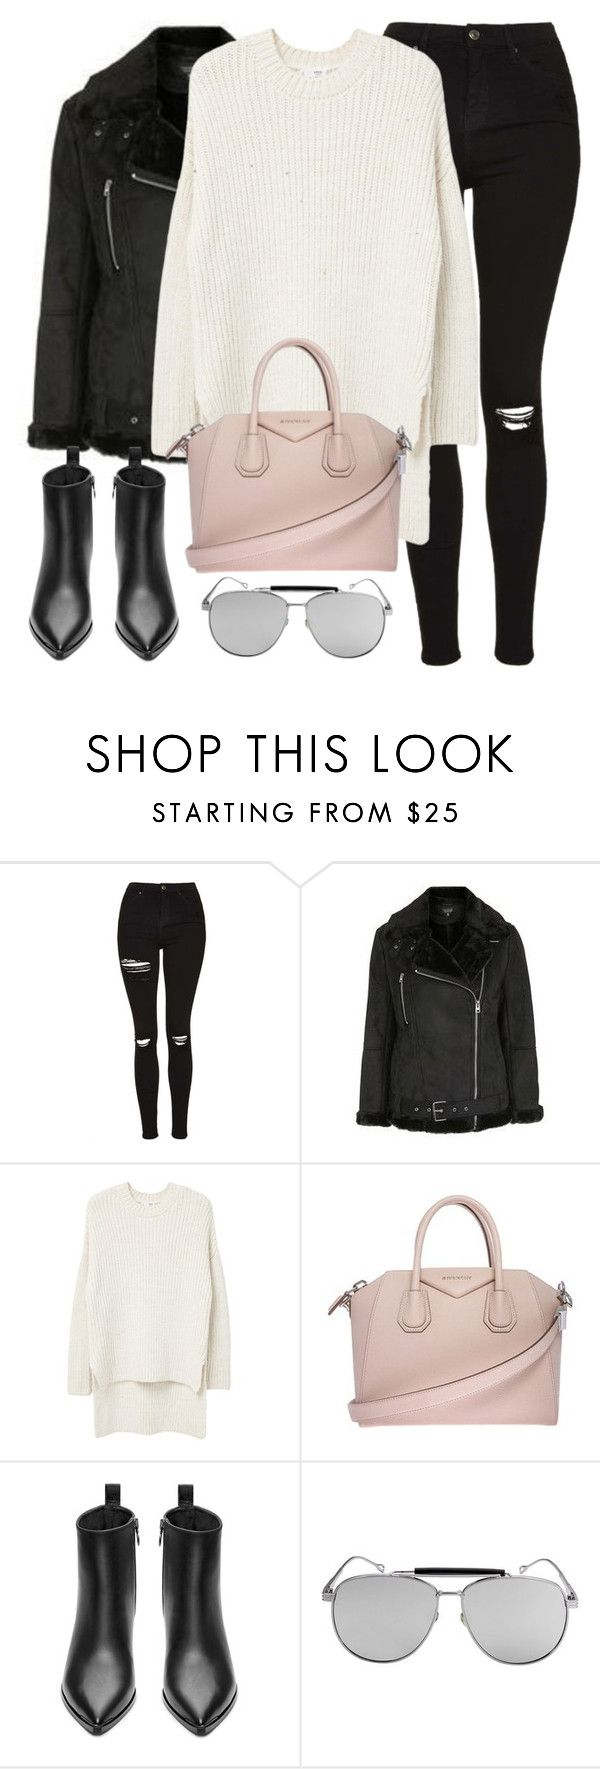 Untitled #2857 by elenaday on Polyvore featuring moda, MANGO, Topshop, Acne Studios, Givenchy, thevoice and YahooView